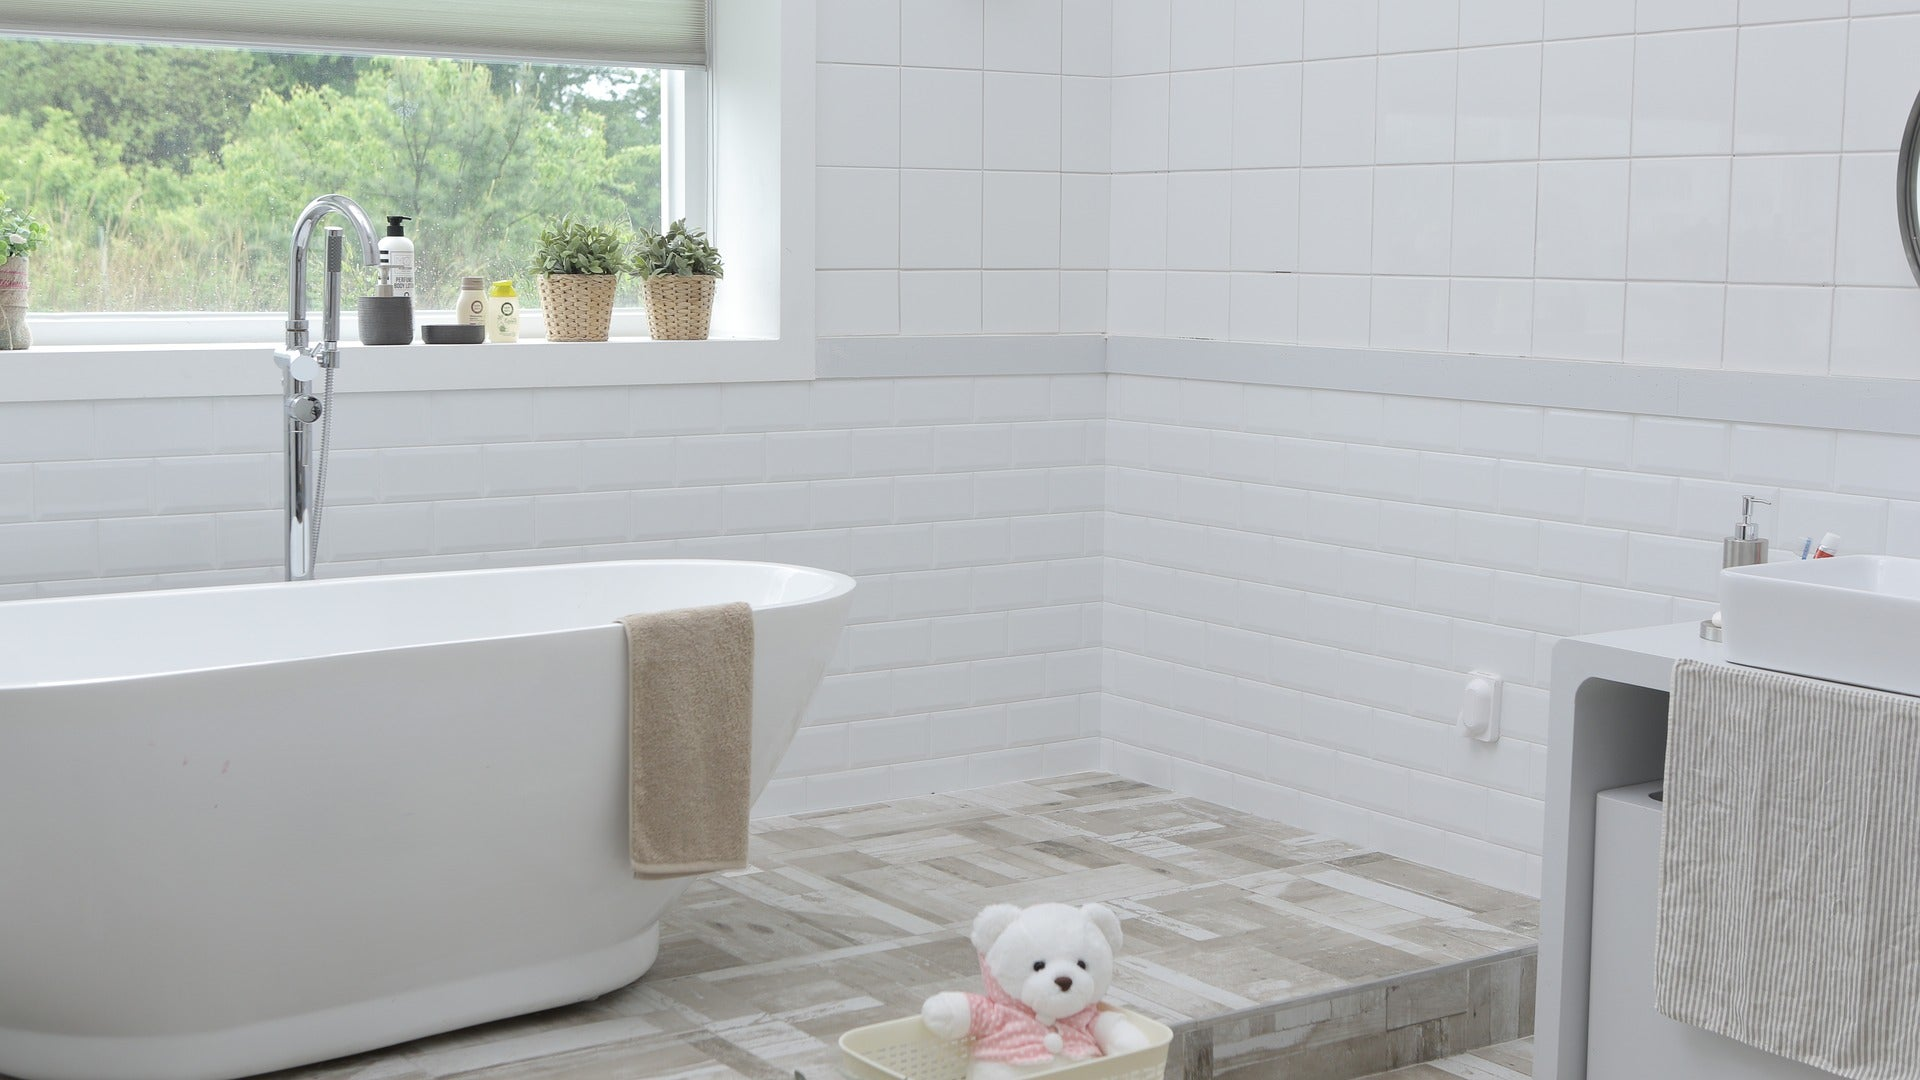 If You Only Have Time To Clean One Room Before Guests Arrive, Make It The Bathroom